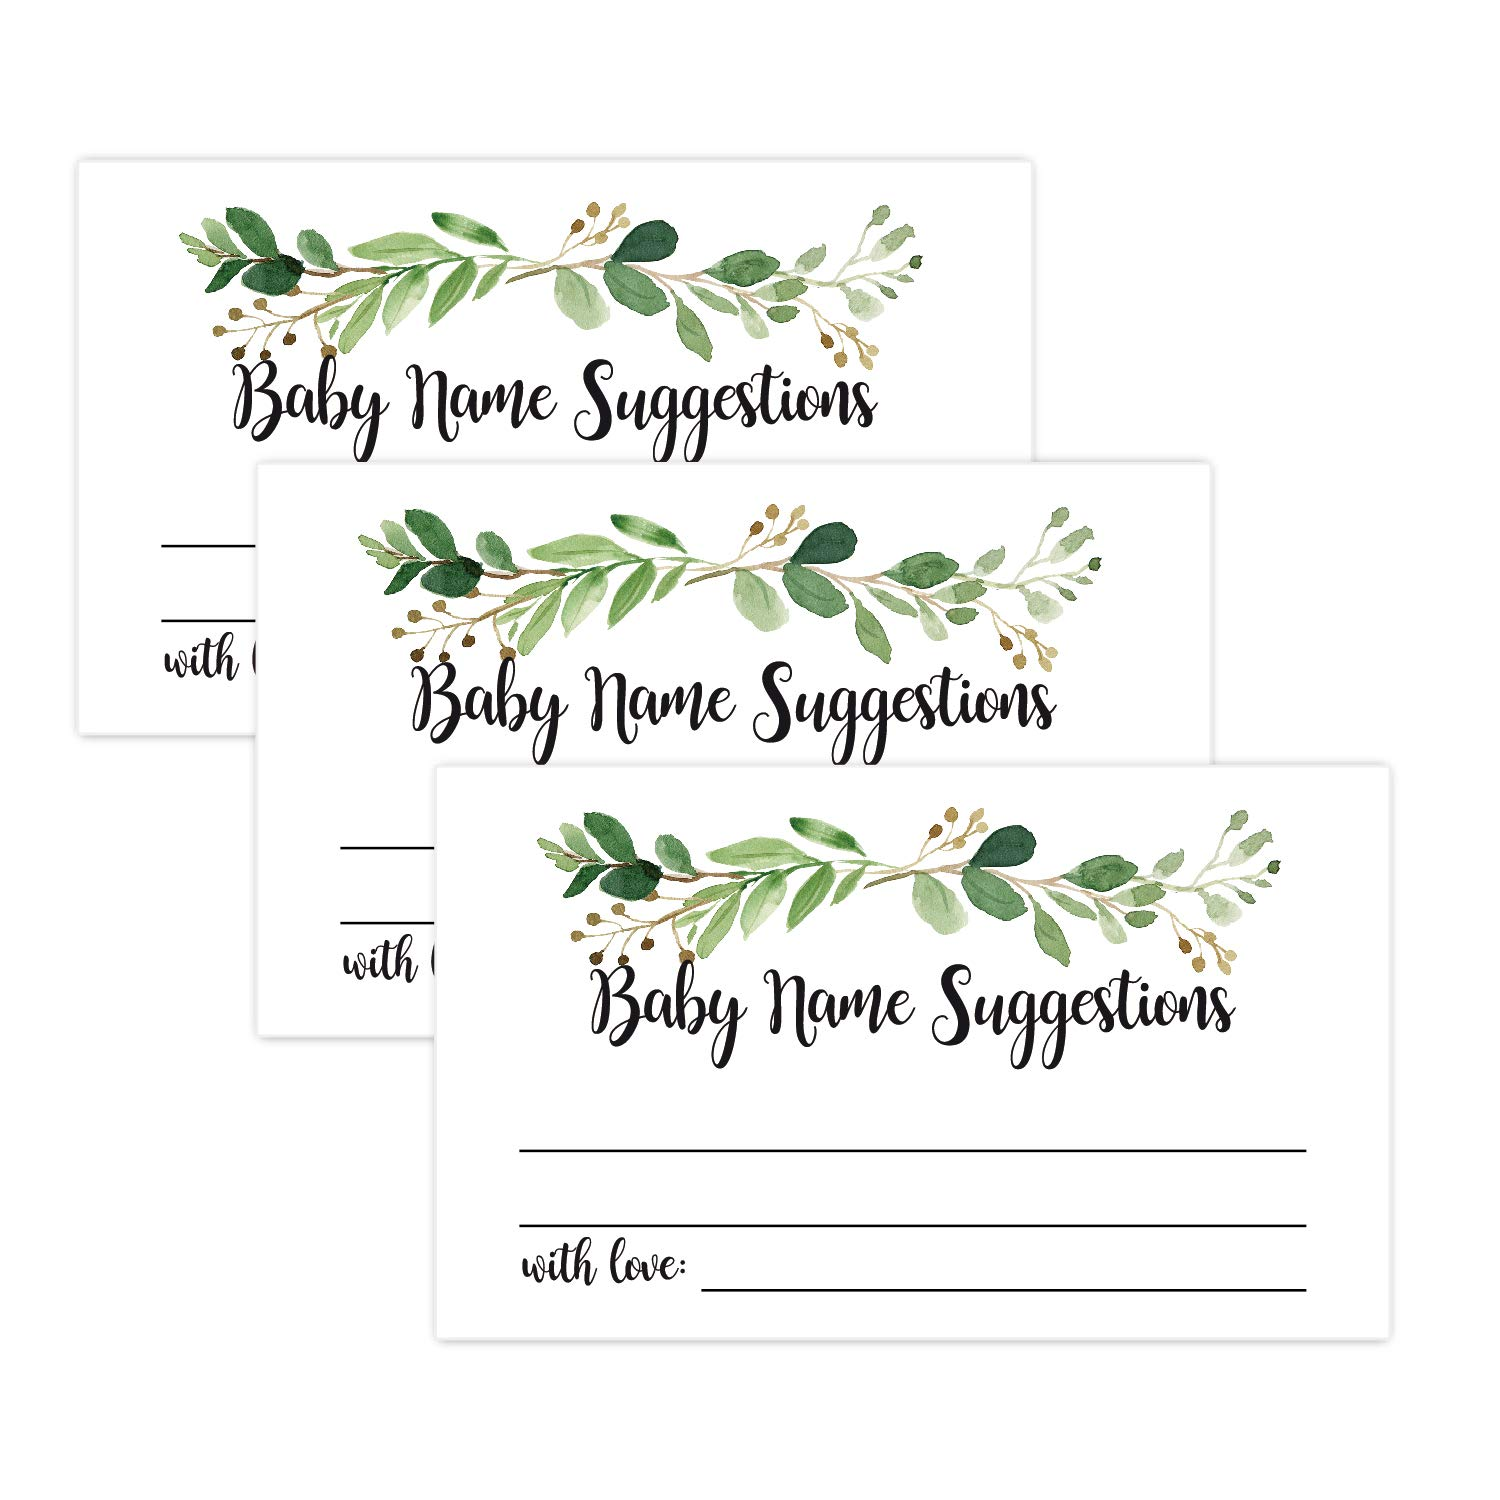 graphic relating to Baby Shower Cards Printable known as 50 Greenery Child Reputation Recommendations Playing cards, Printable Environmentally friendly Foliage Child Reputation Activity, Child Shower Match Assistance Card, Greenery Shower Decoration, Kid